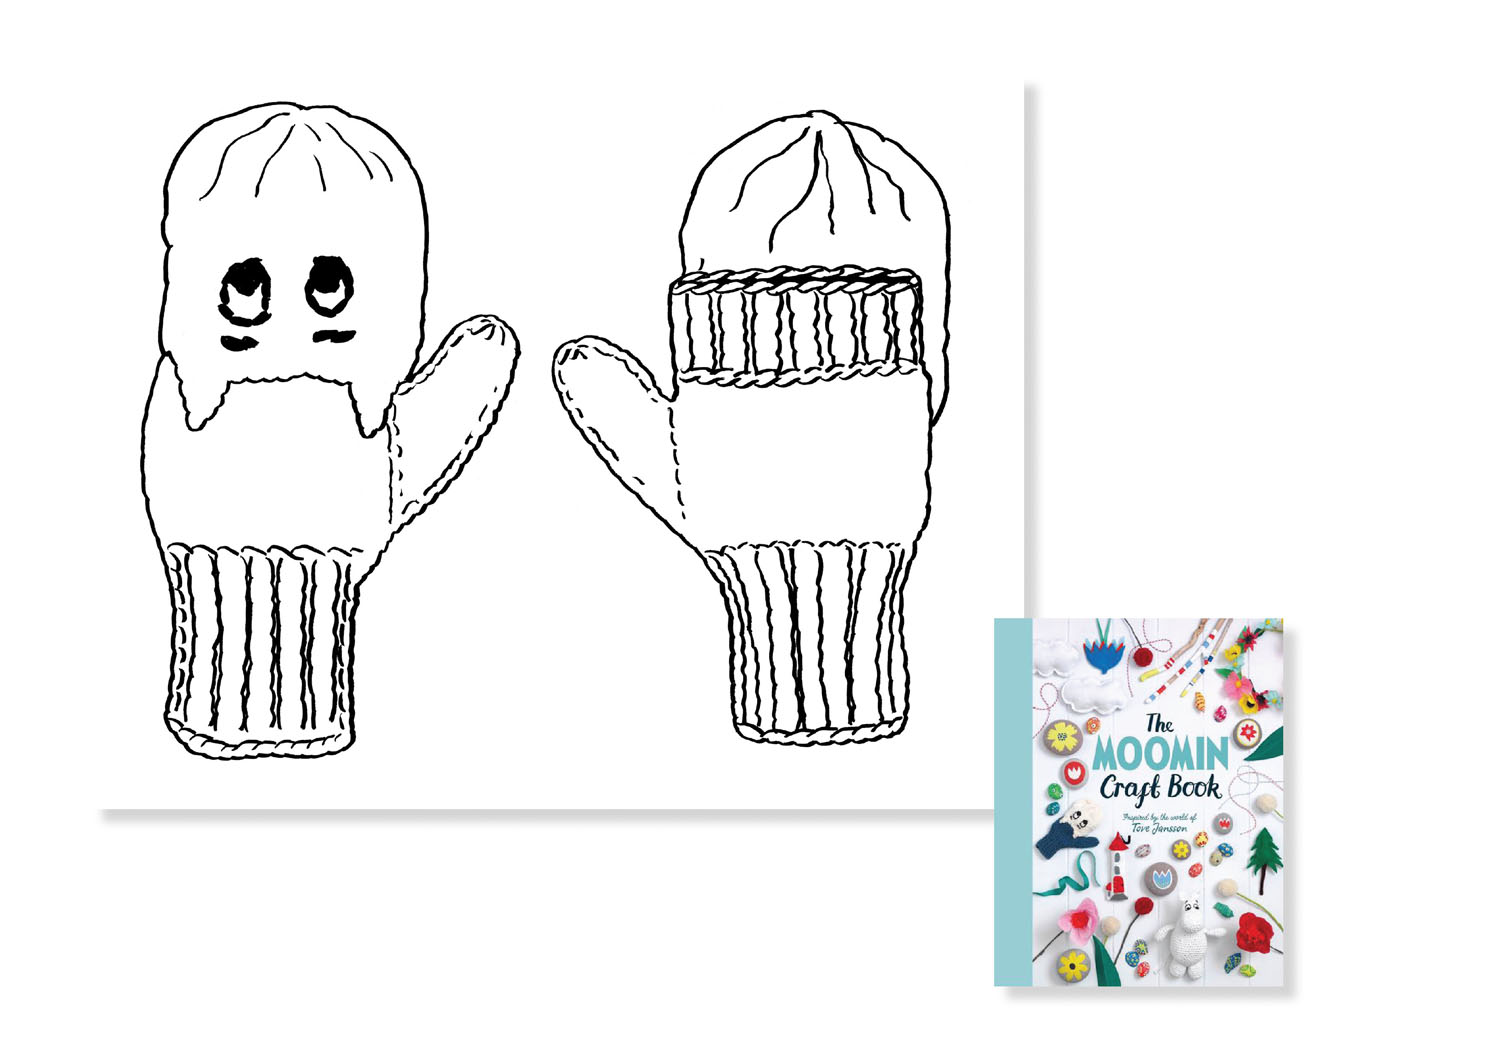 Mittens for The Moomin Craft Book